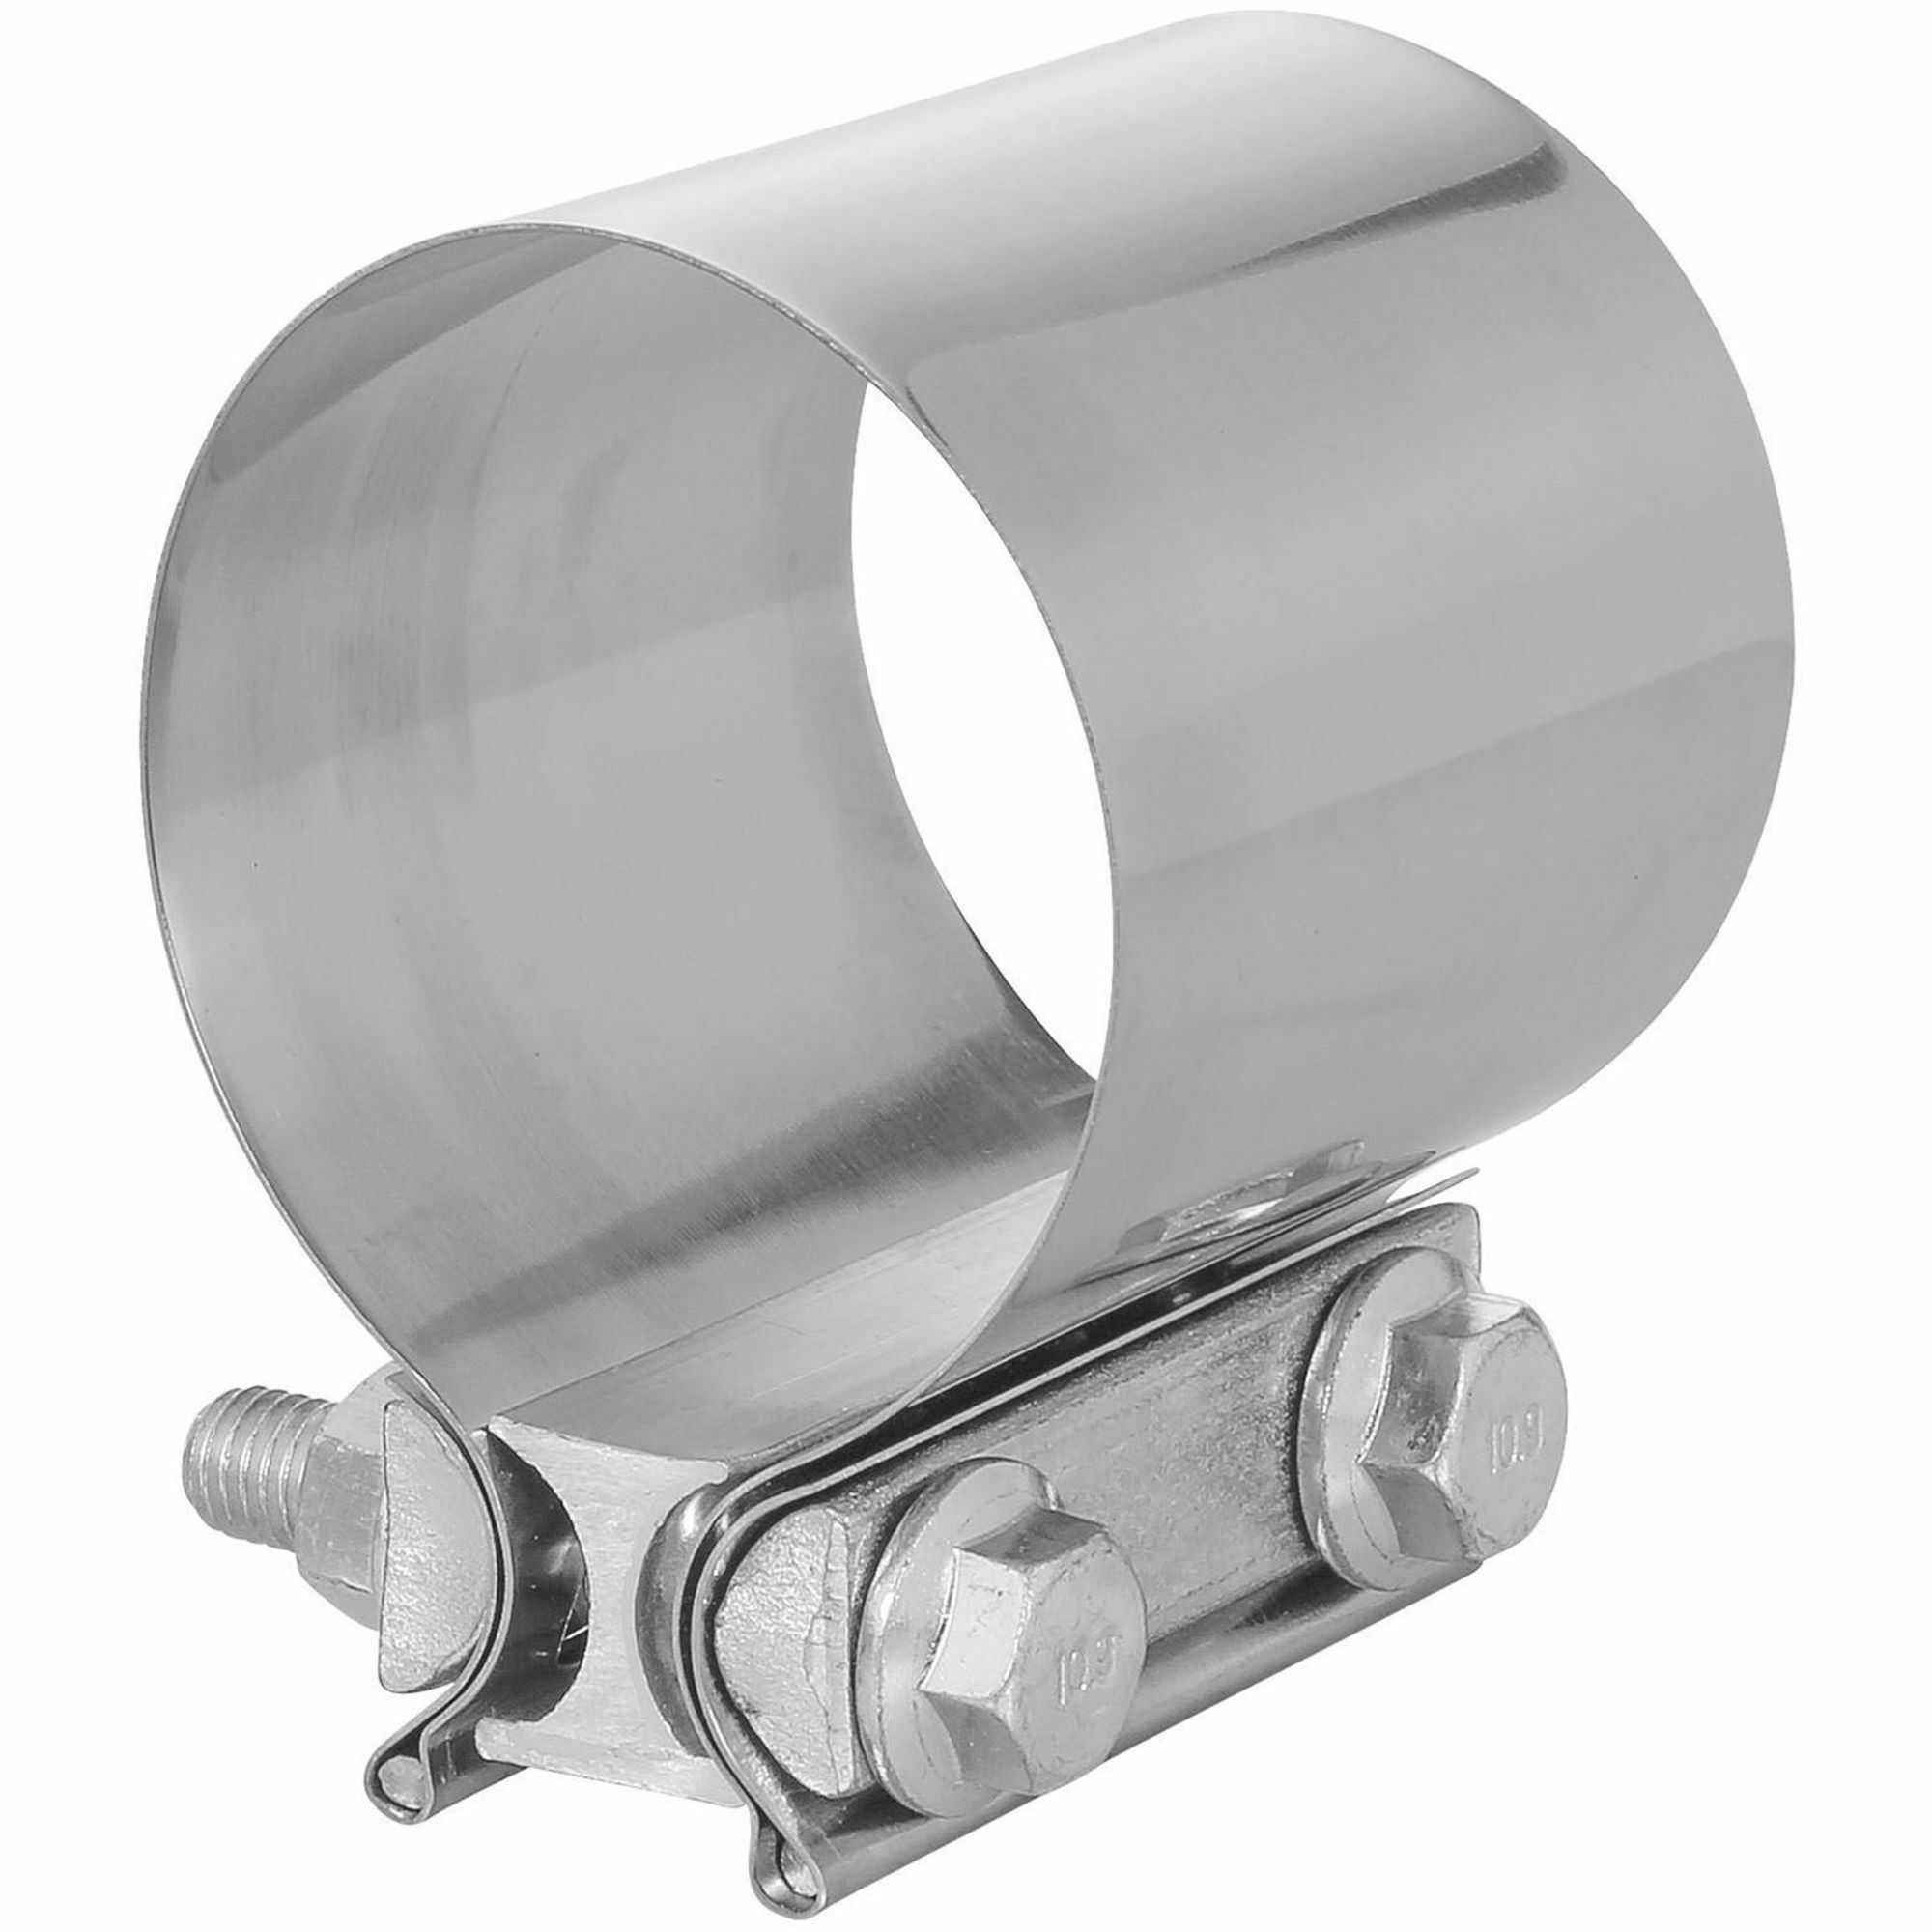 TOTALFLOW TF-JB63 Butt Joint Exhaust Muffler Clamp Band | 4.5 Inch